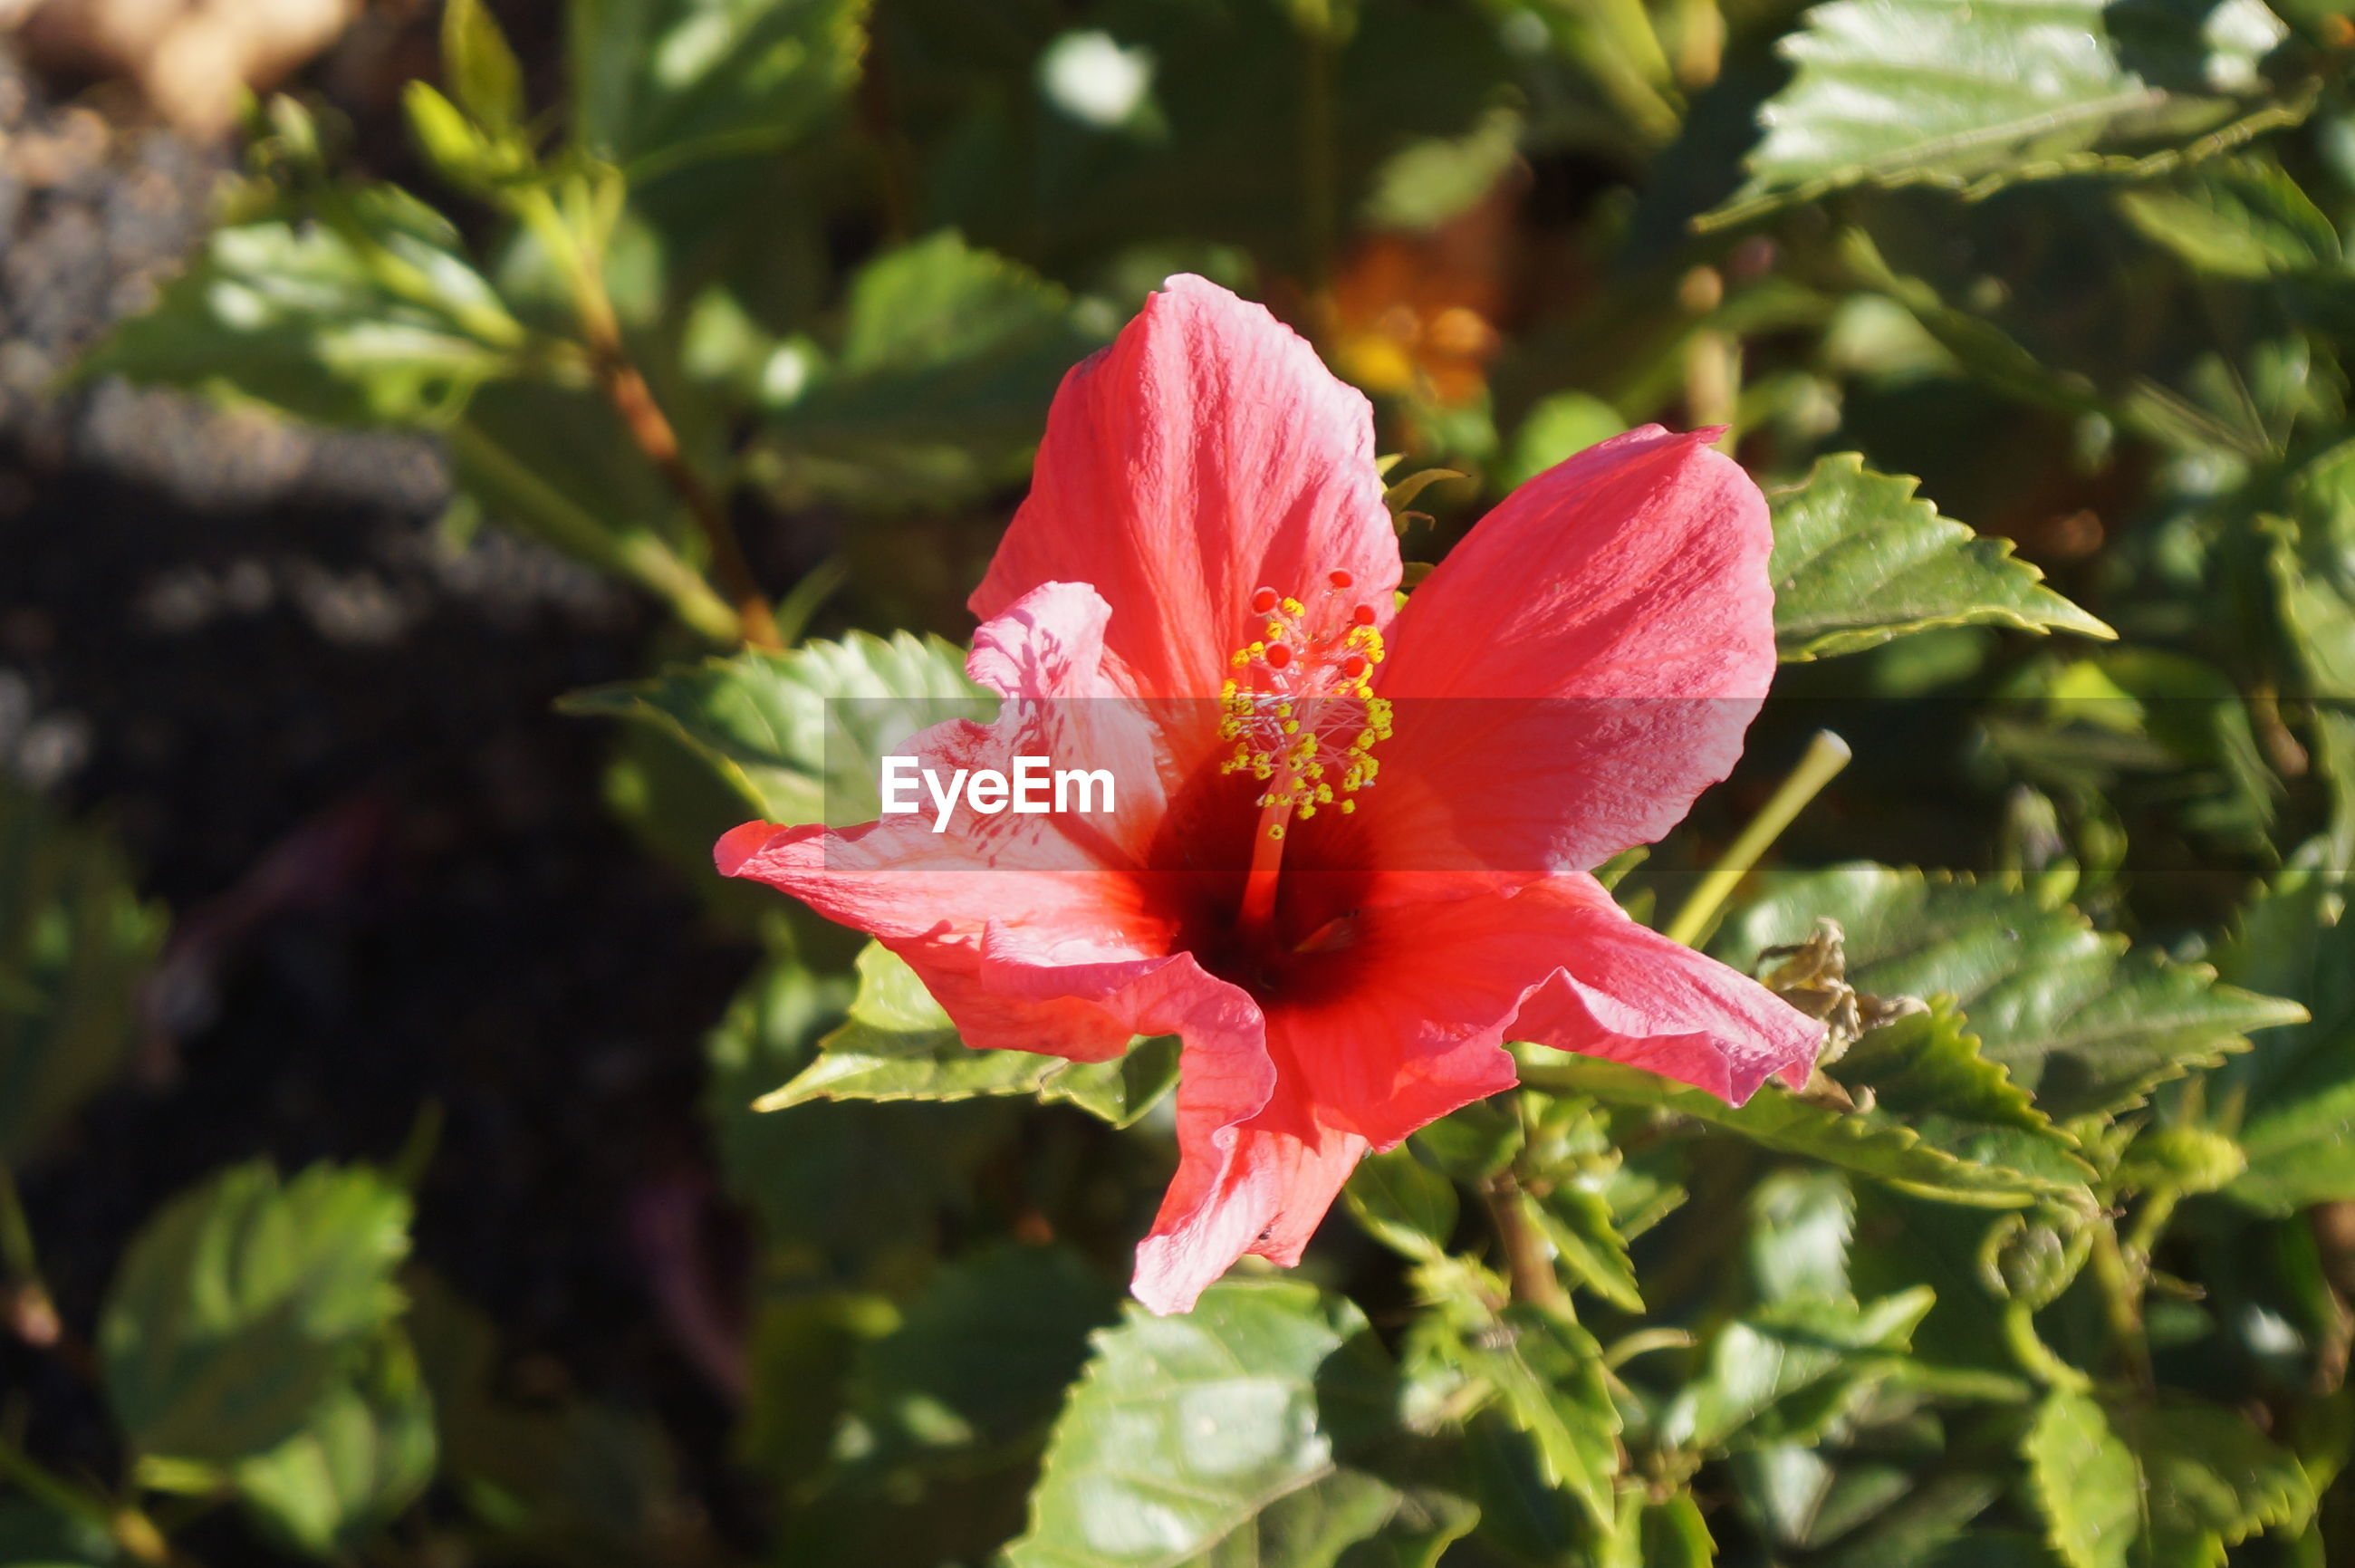 flower, petal, nature, fragility, beauty in nature, growth, flower head, freshness, red, pink color, day, plant, no people, outdoors, blooming, hibiscus, soft focus, close-up